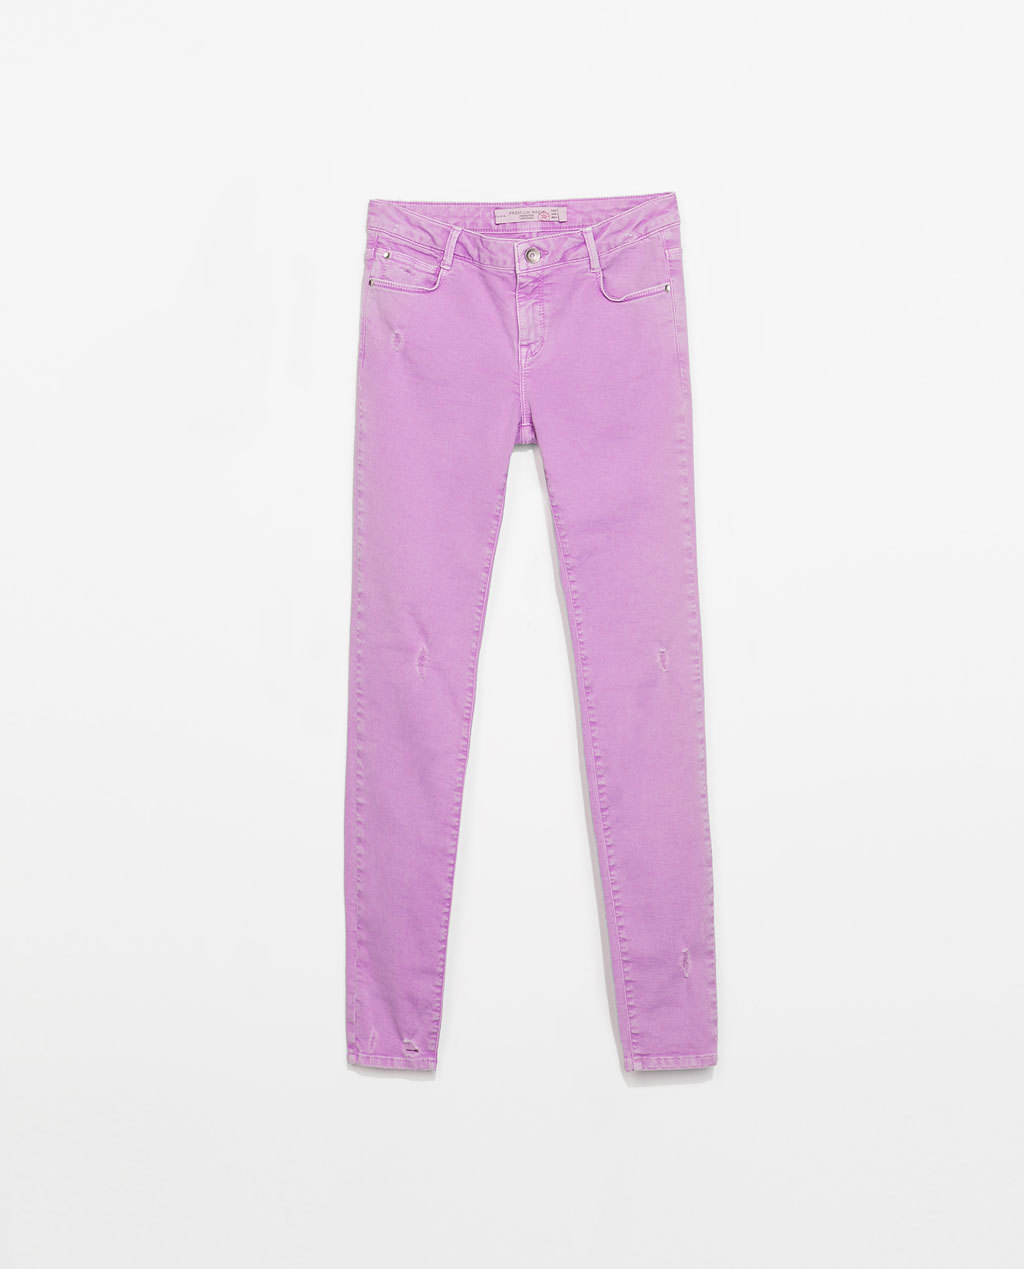 Low Waist Skinny Trousers - length: standard; pattern: plain; pocket detail: traditional 5 pocket; waist: mid/regular rise; predominant colour: lilac; occasions: casual, creative work; fibres: cotton - stretch; texture group: cotton feel fabrics; fit: skinny/tight leg; pattern type: fabric; style: standard; season: s/s 2014